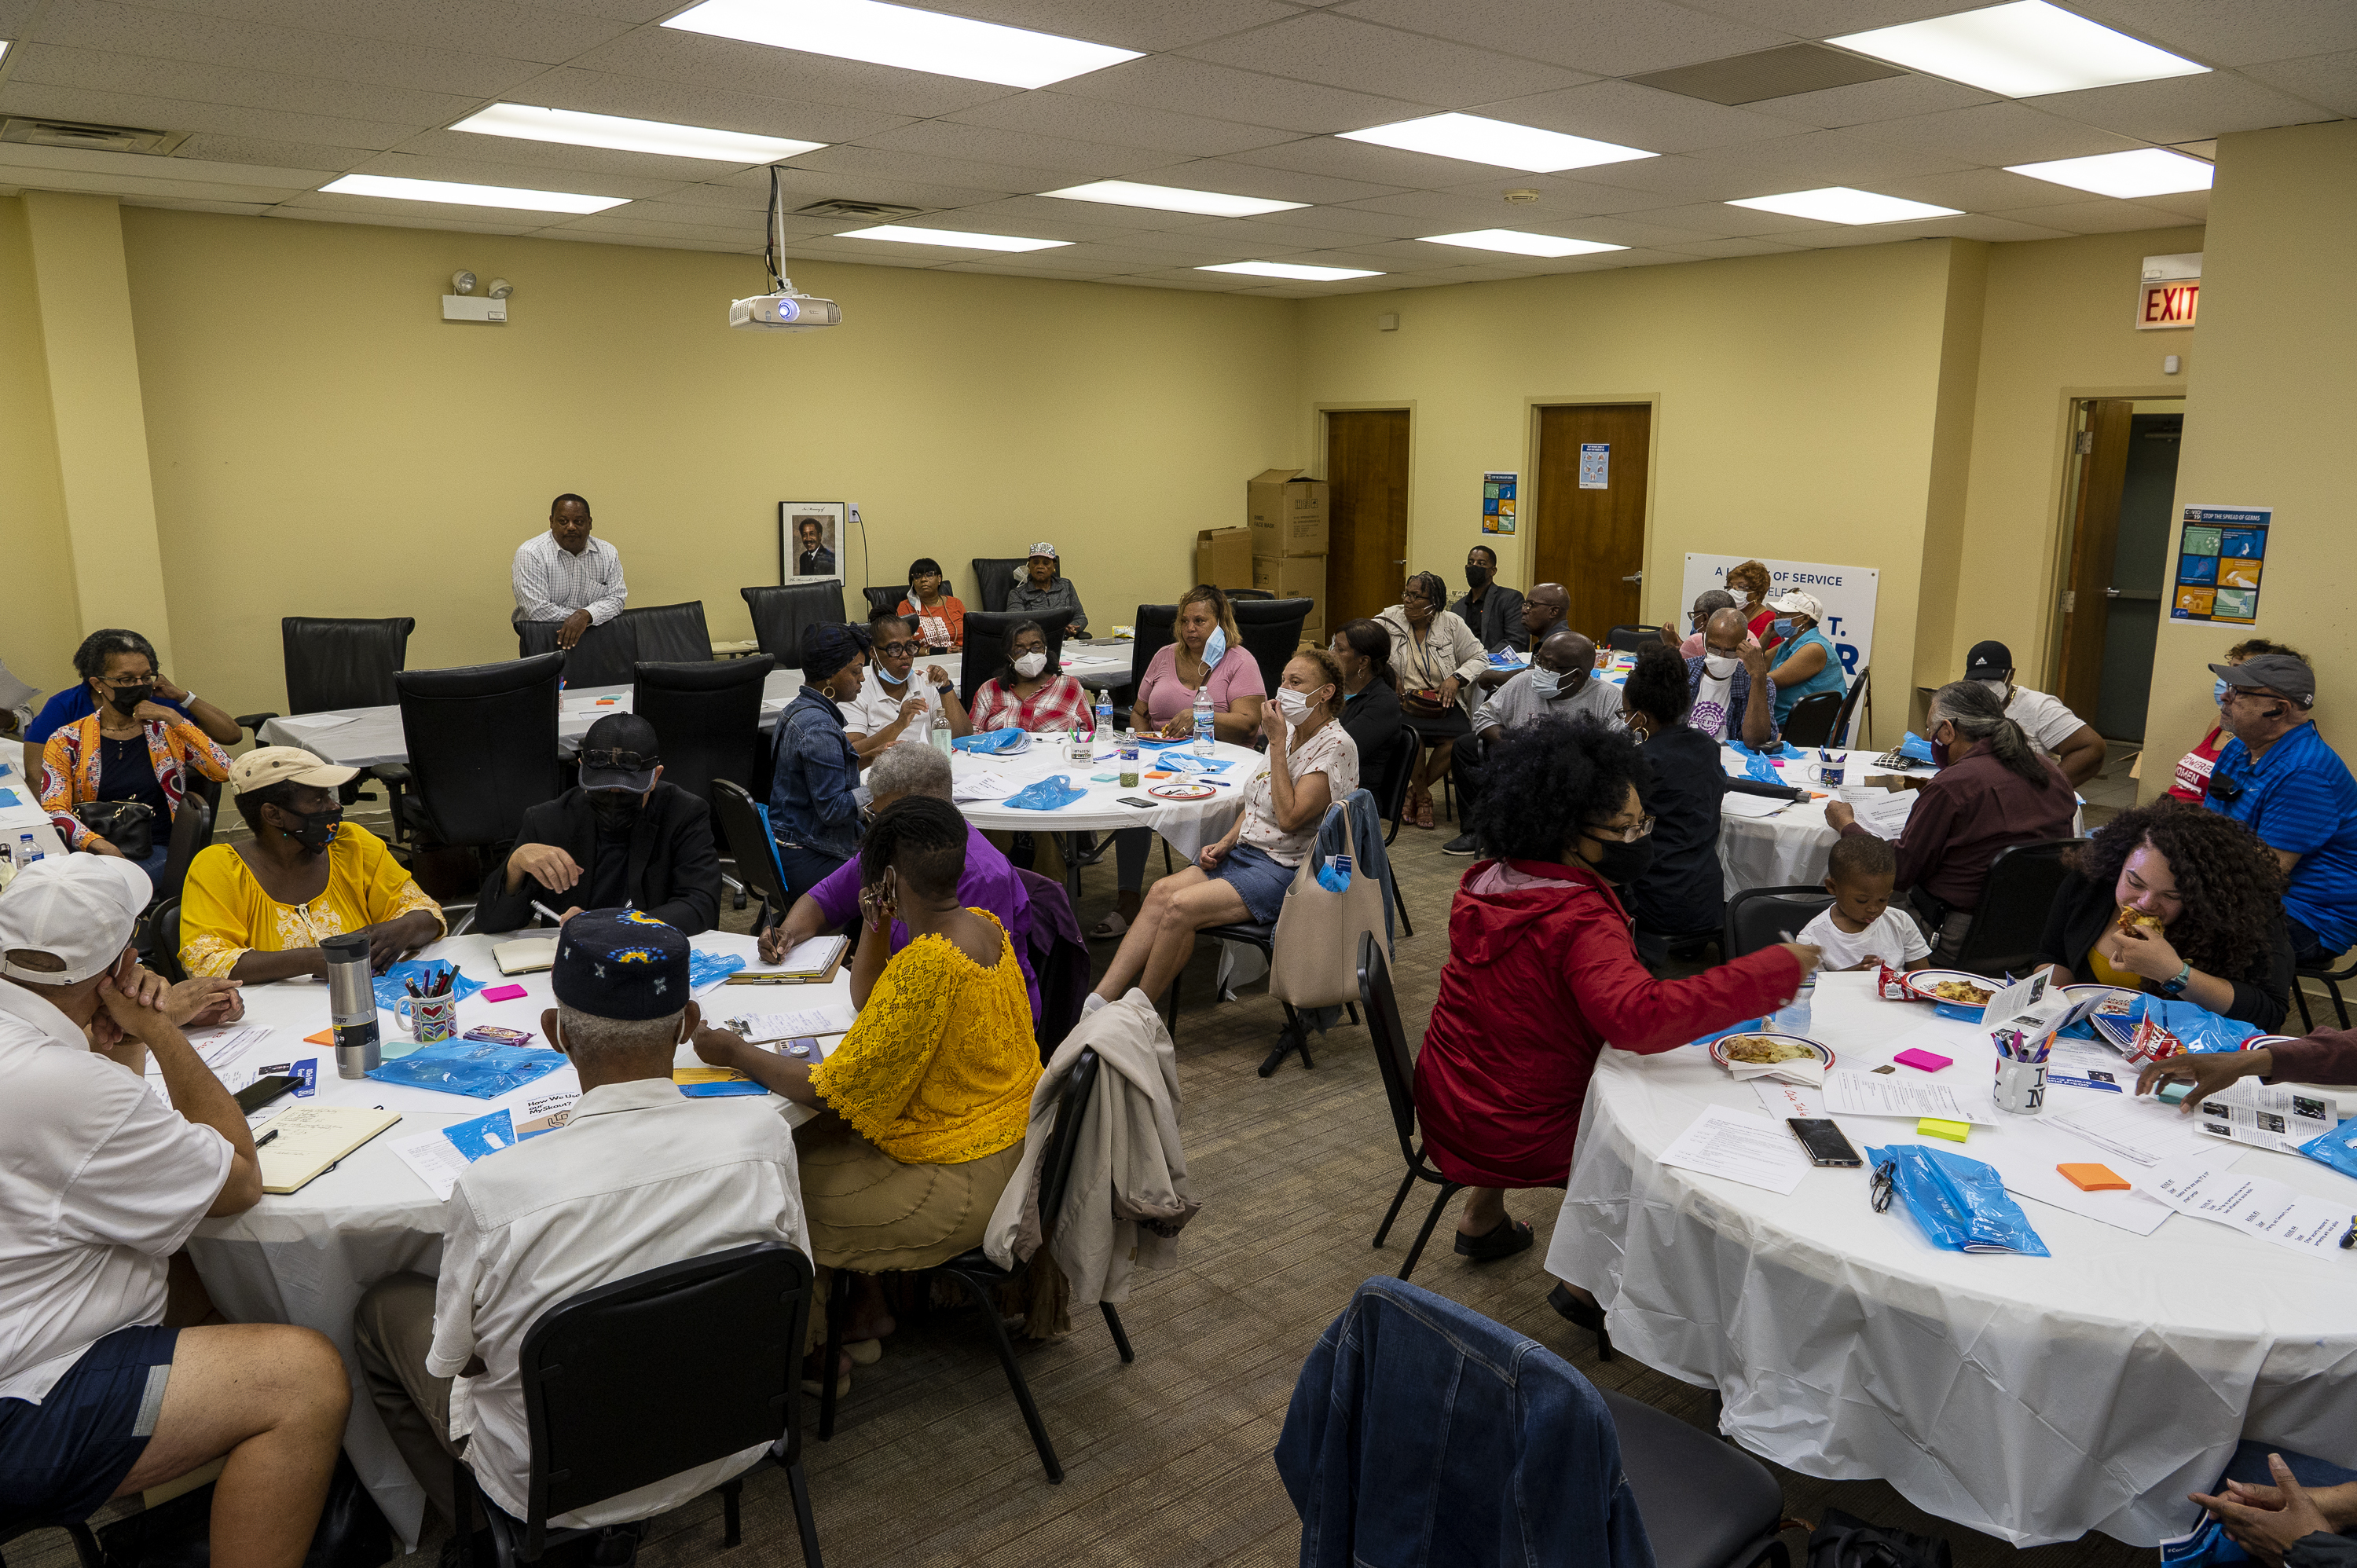 Ald. Roderick Sawyer (6th) discussed drones to fight crime with about 50 constituents gathered in his South Side office Monday night to consider public safety ideas.